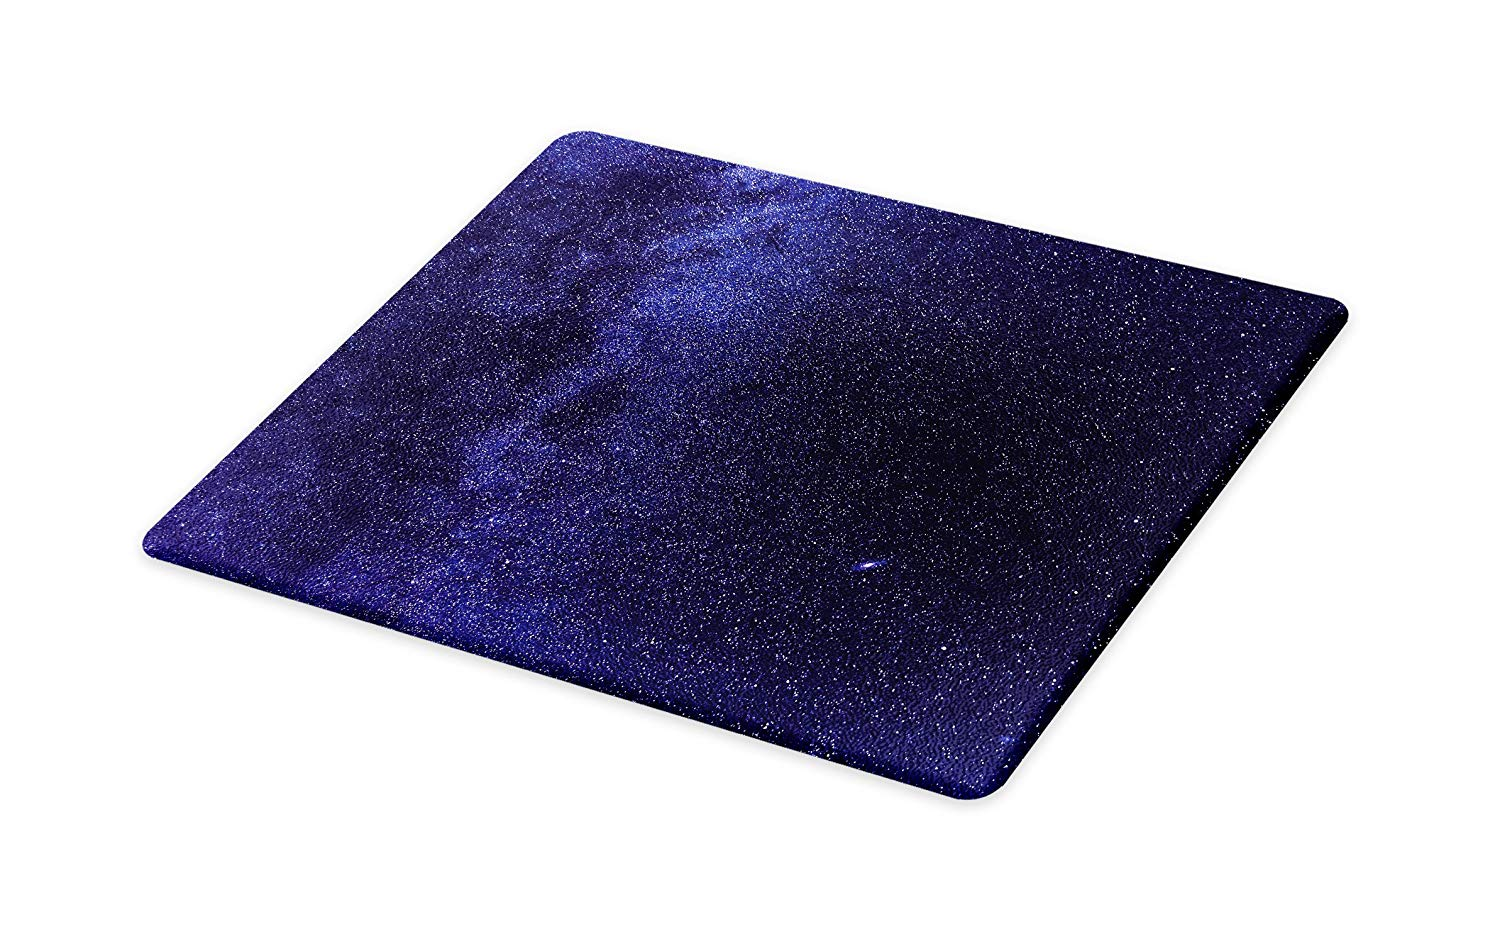 Lunarable Dark Blue Cutting Board, Night Sky with Stars Milky Way Cosmos Galaxy Infinite Universe Celestial, Decorative Tempered Glass Cutting and Serving Board, Large Size, Indigo Dark Blue